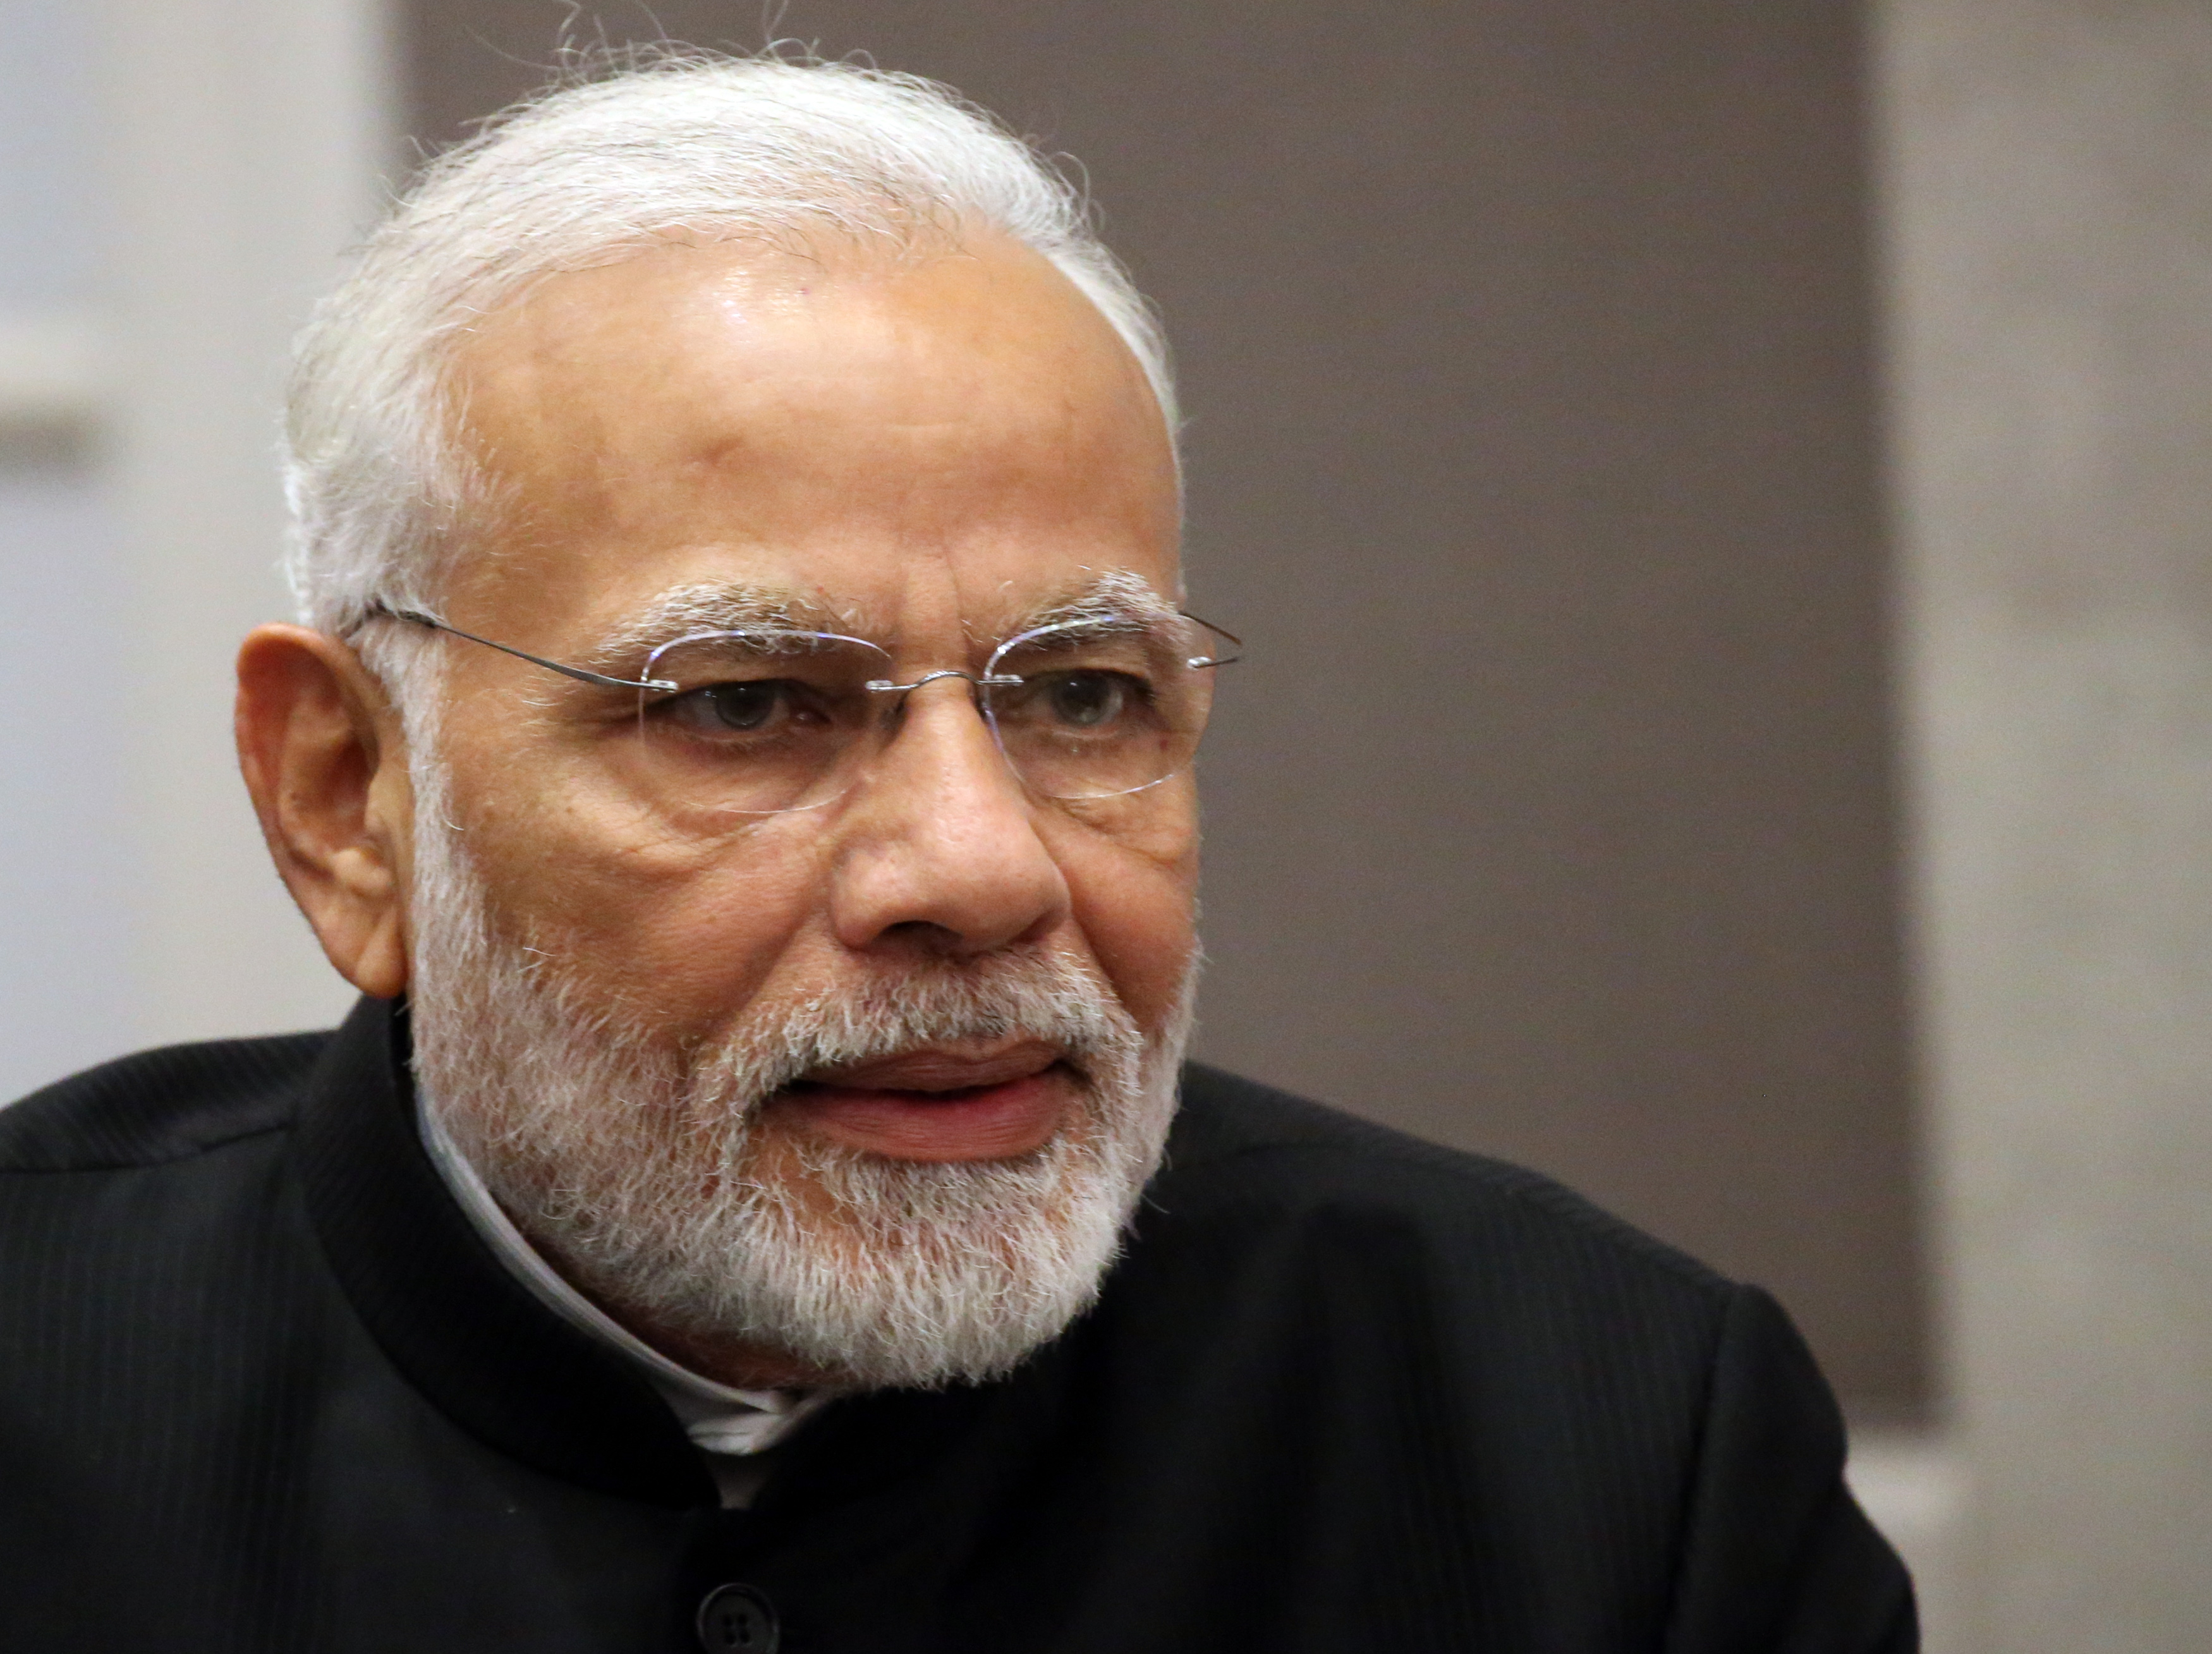 India's Prime Minister Narendra Modi alongside claim of country free of open defecation